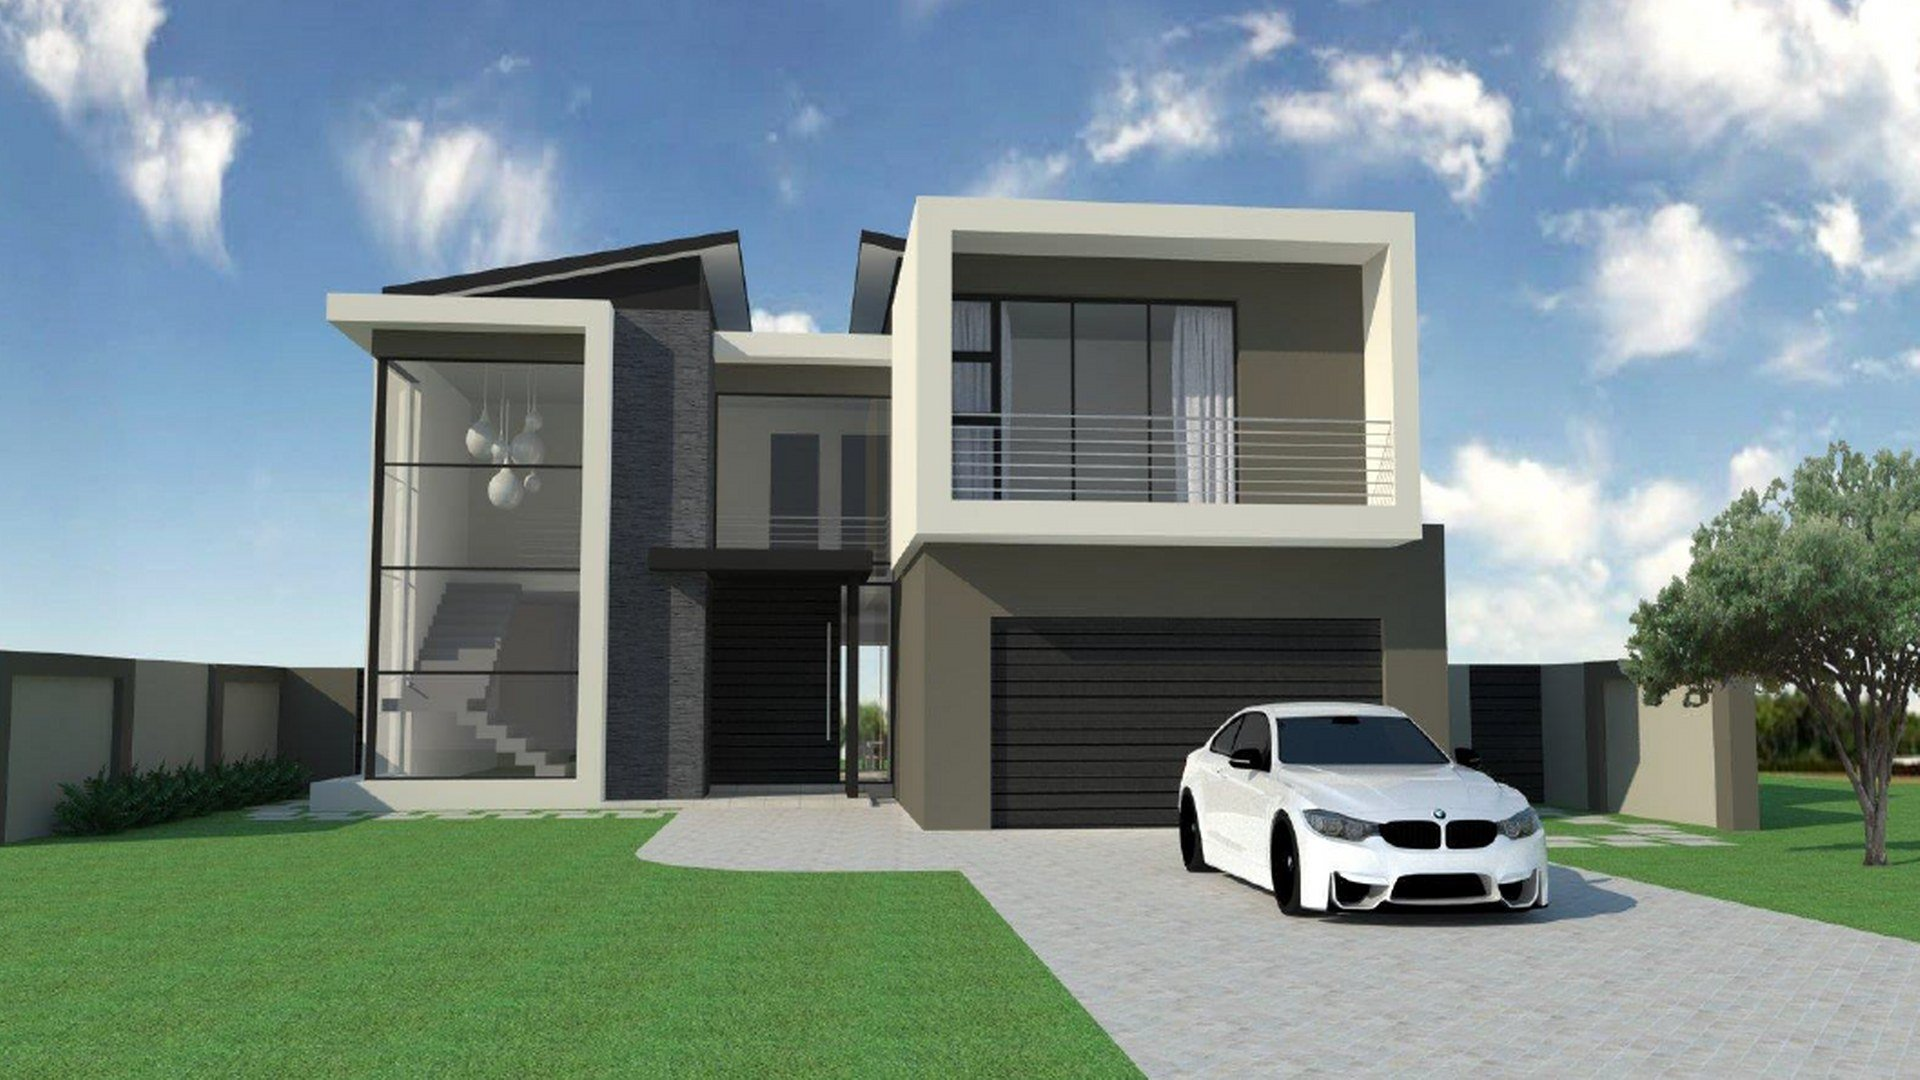 Midvaal eye of africa estate property houses for sale for Estate house